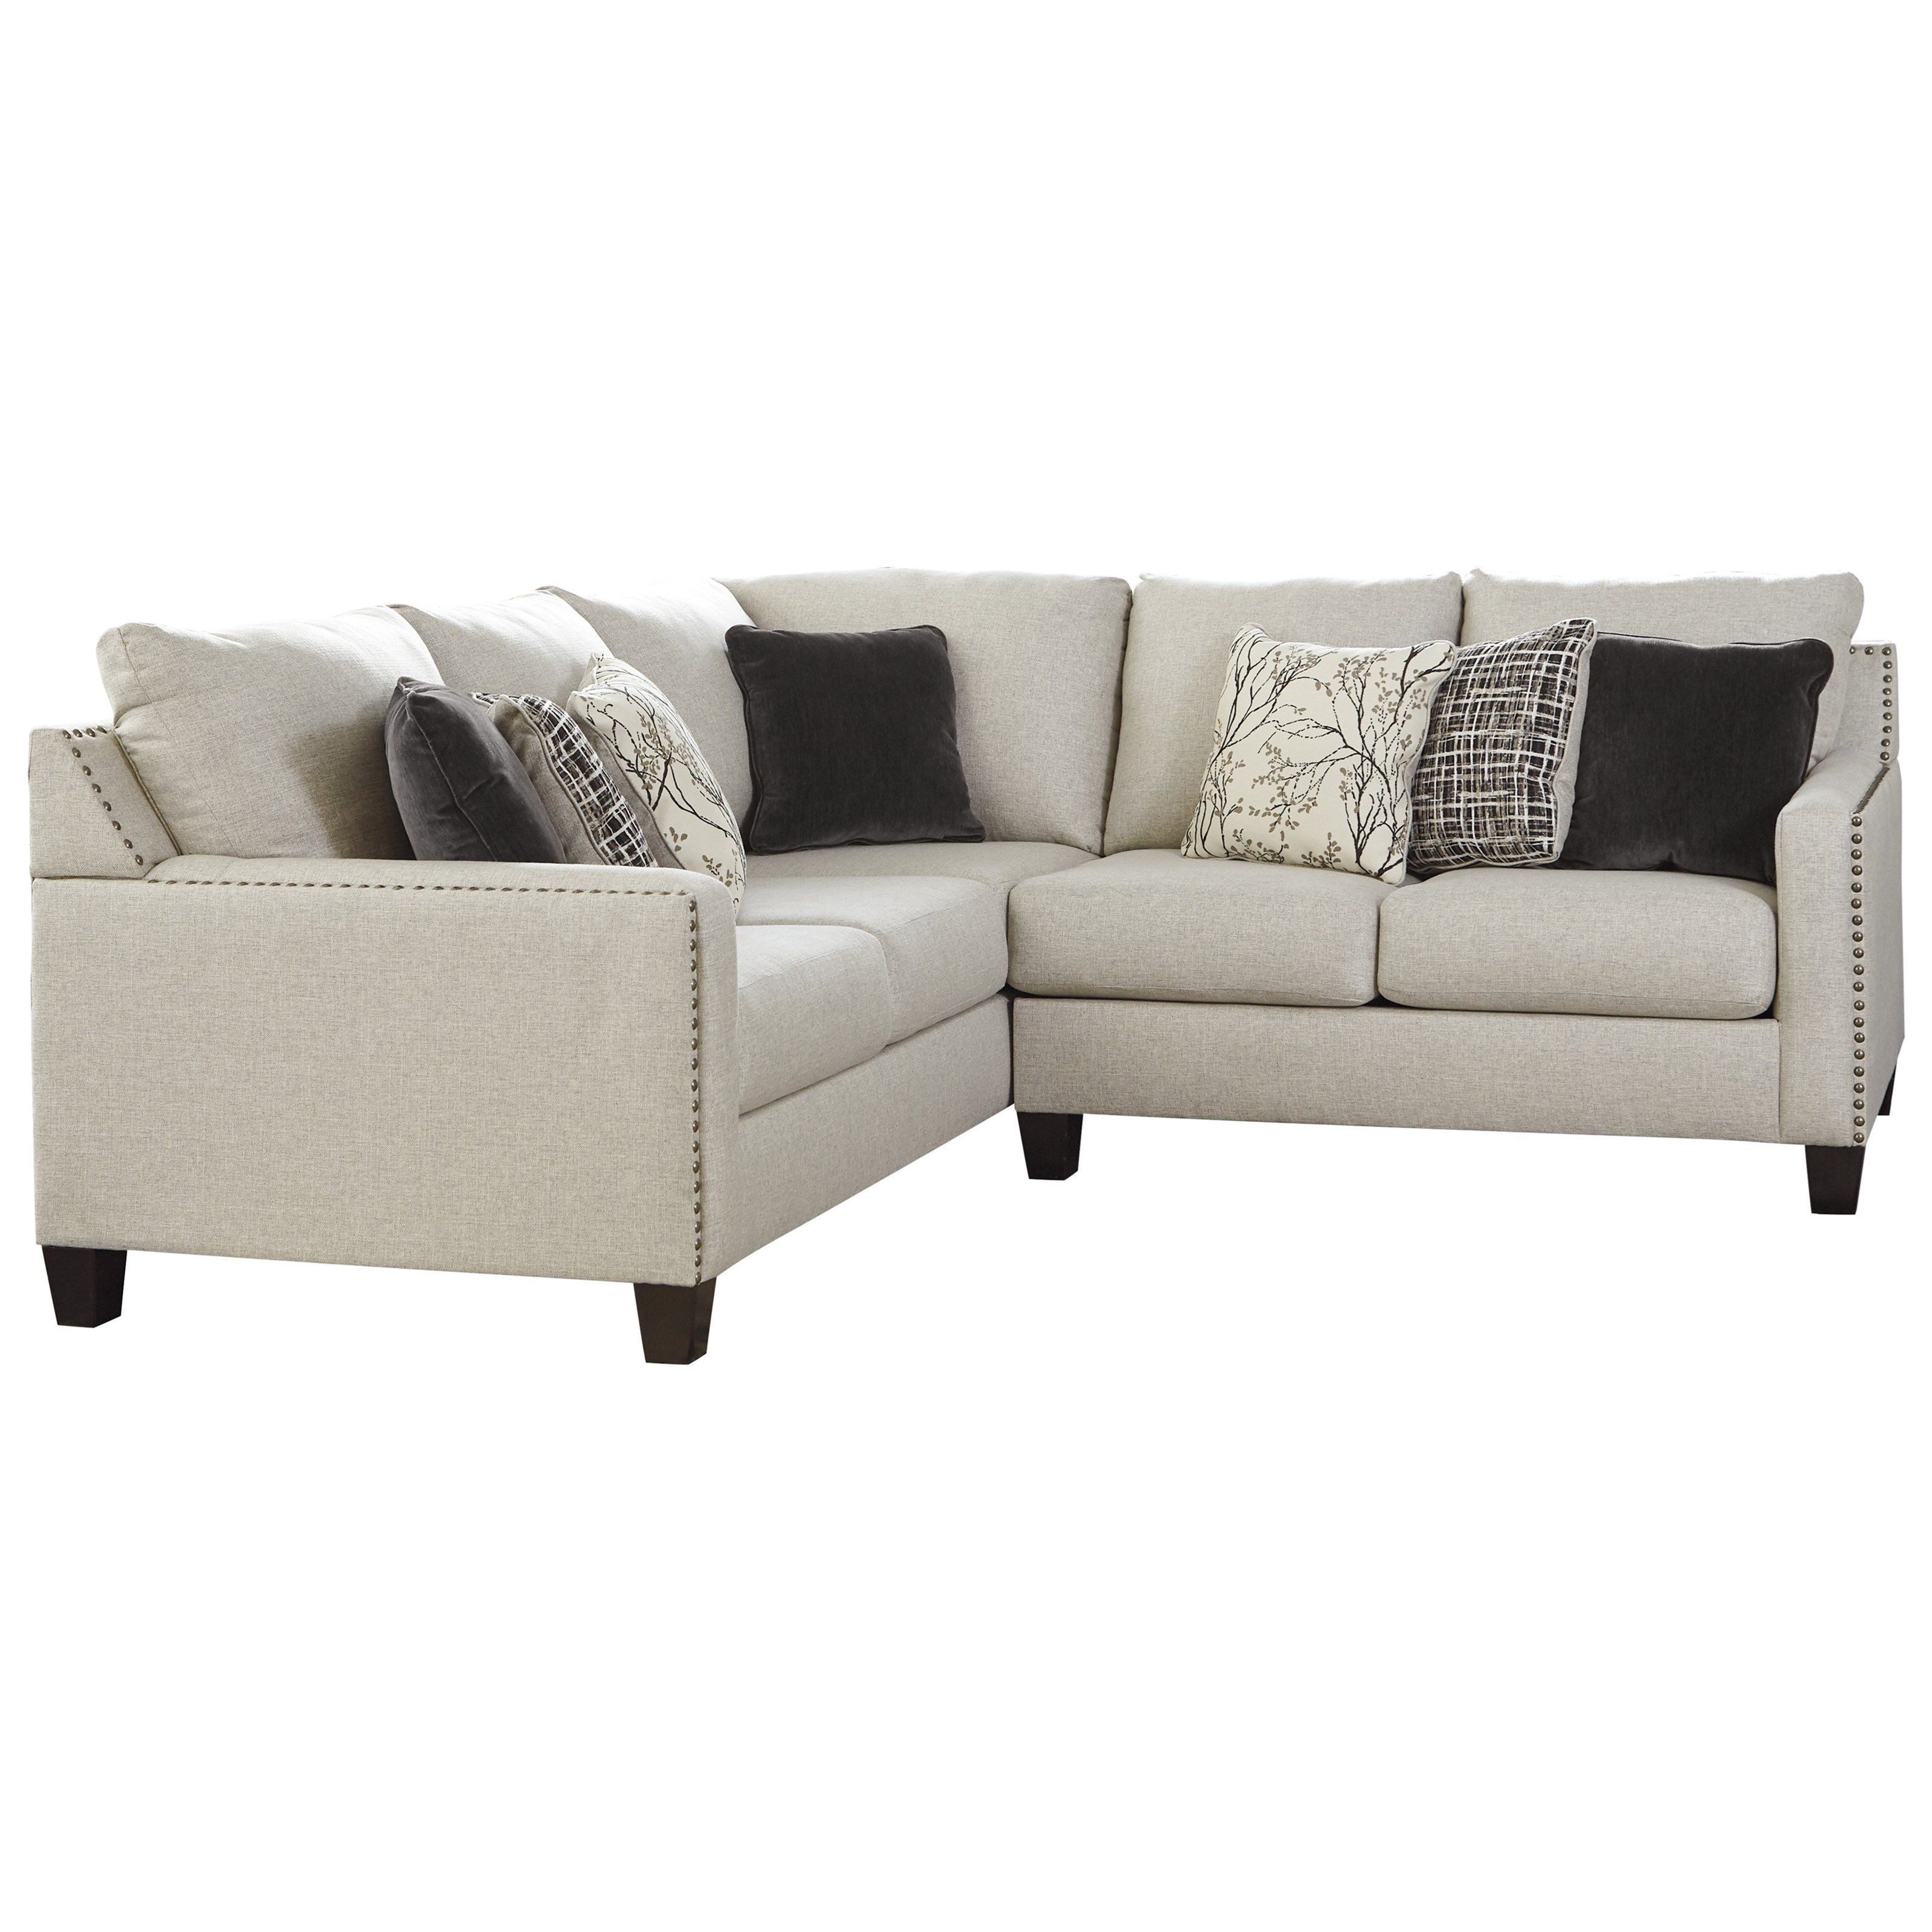 Hallenberg 2-Piece Sectional by Signature Design by Ashley at Northeast Factory Direct